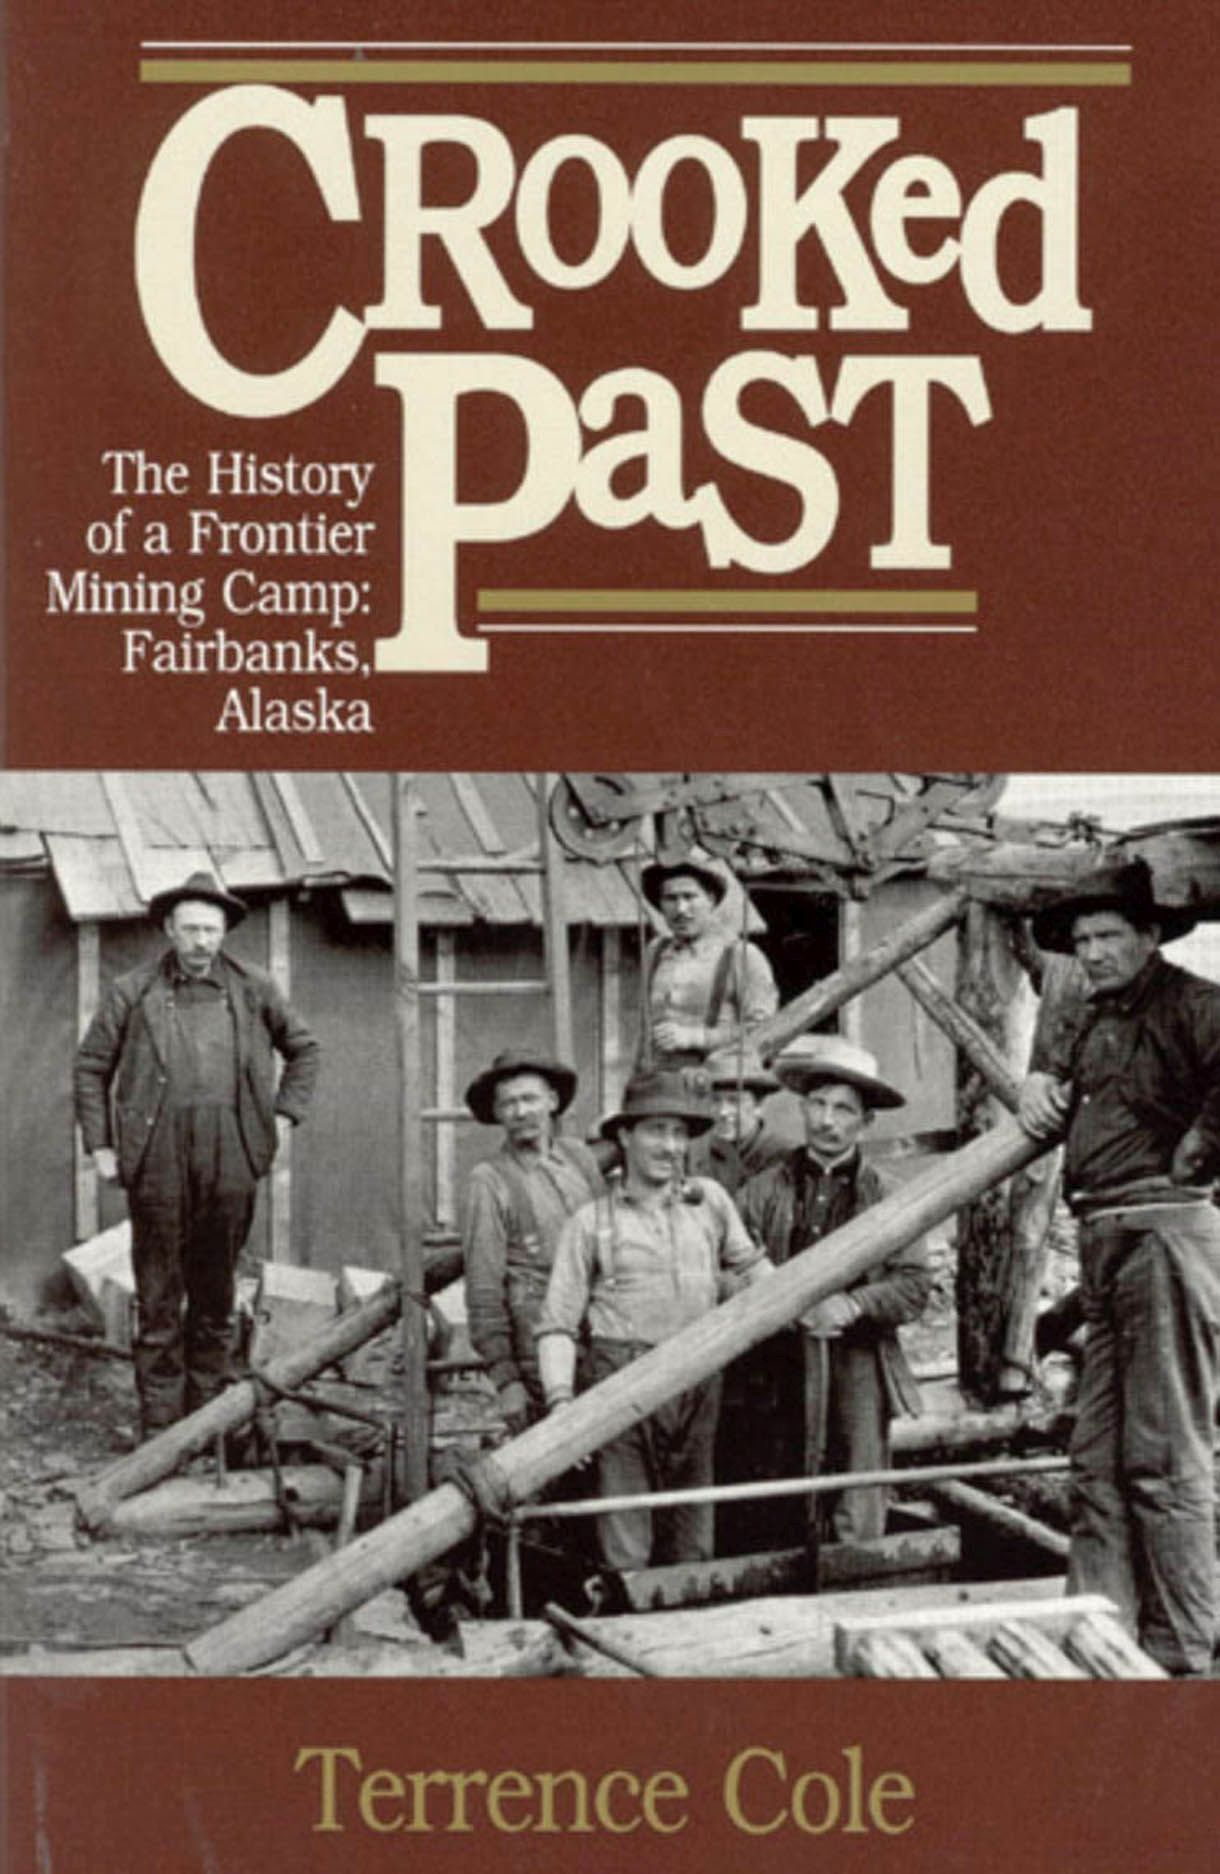 Crooked Past: The History of a Frontier Mining Camp